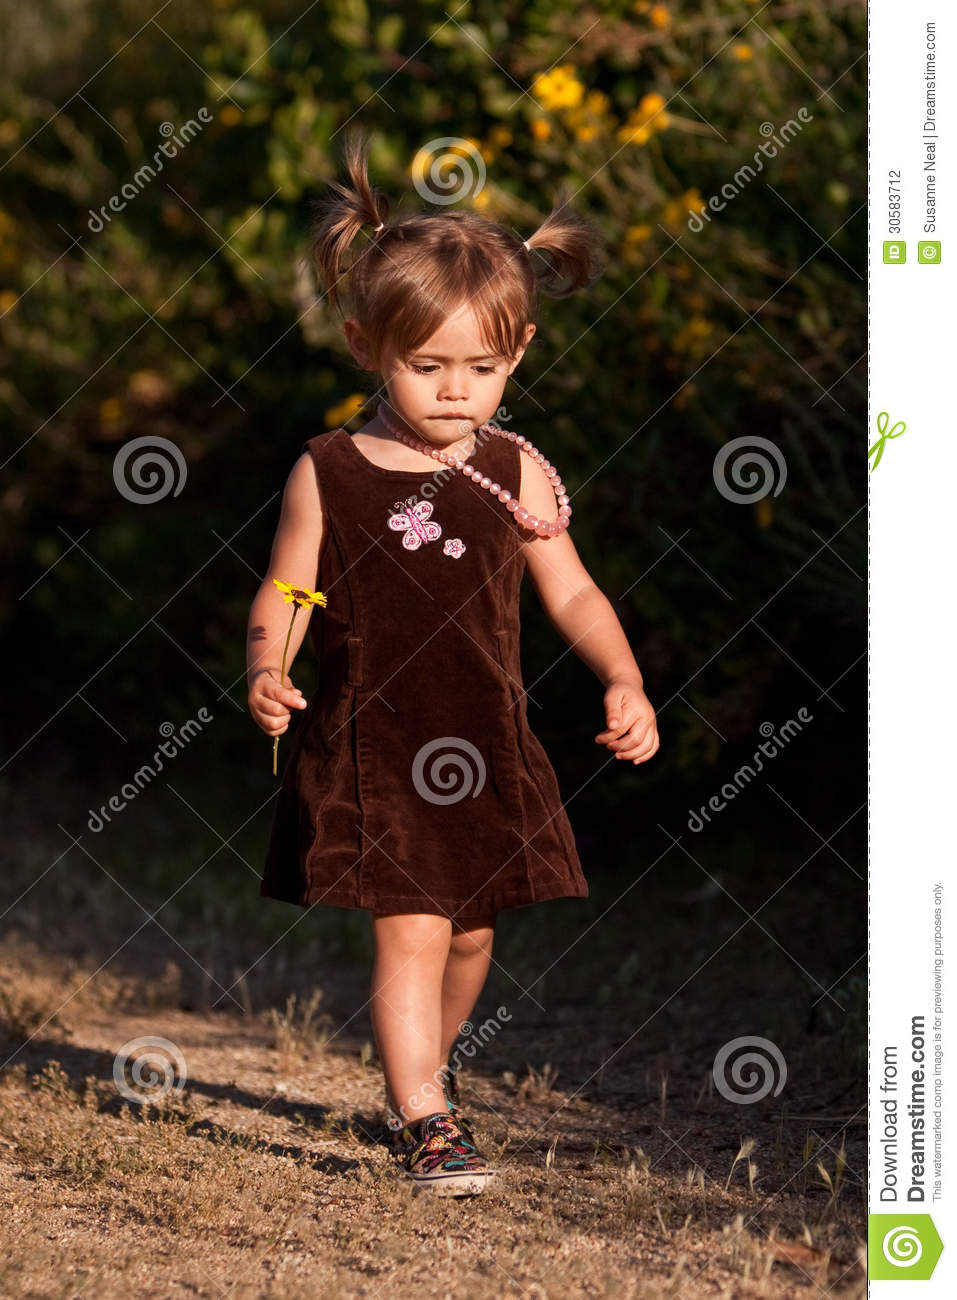 4c93d2c96 Cute Two-year-old Girl Walking Outdoors Stock Photo - Image of ...